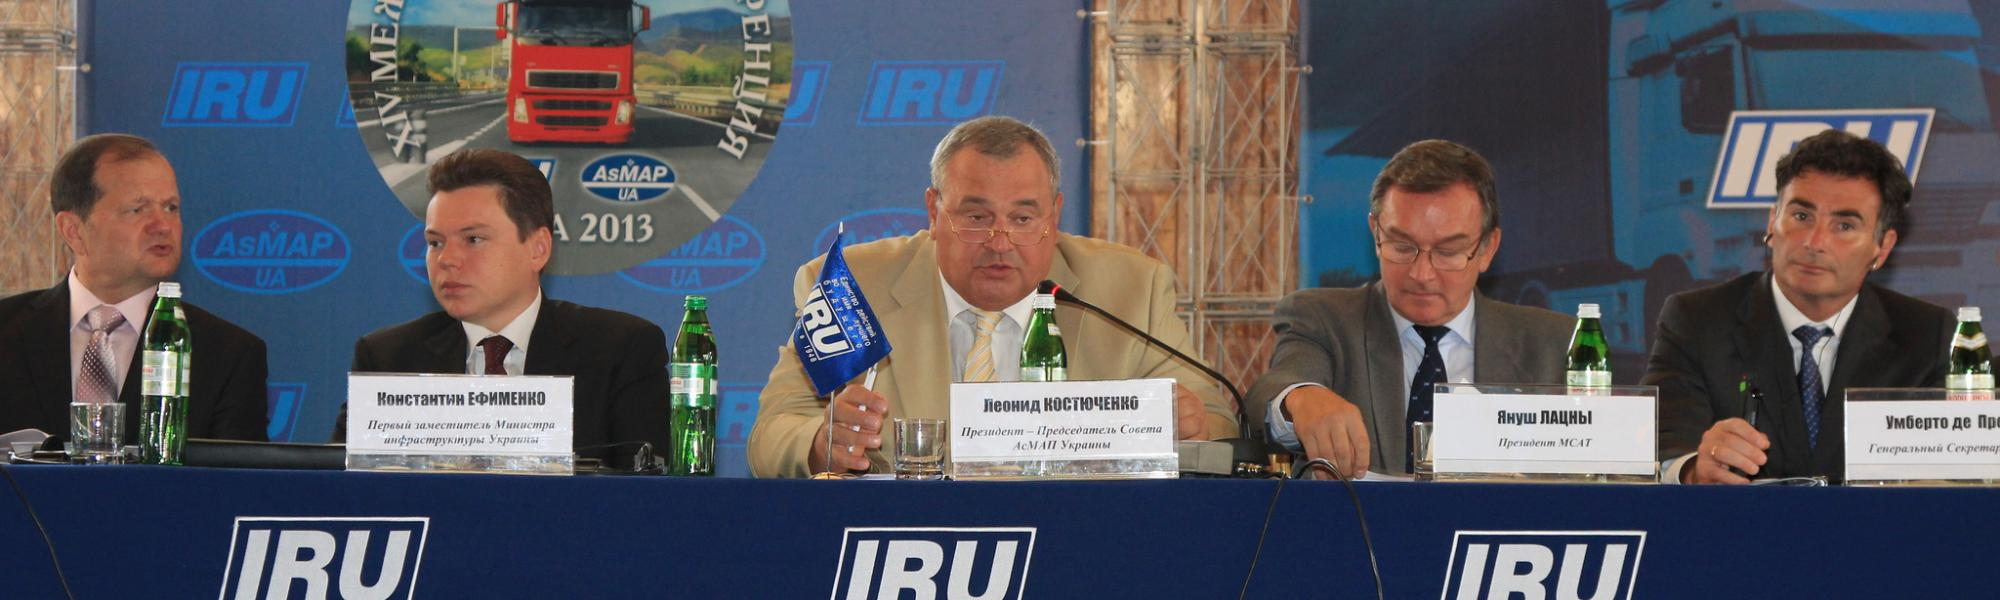 IRU commends best Eurasian hauliers 2013 at Awards Ceremony in Yalta